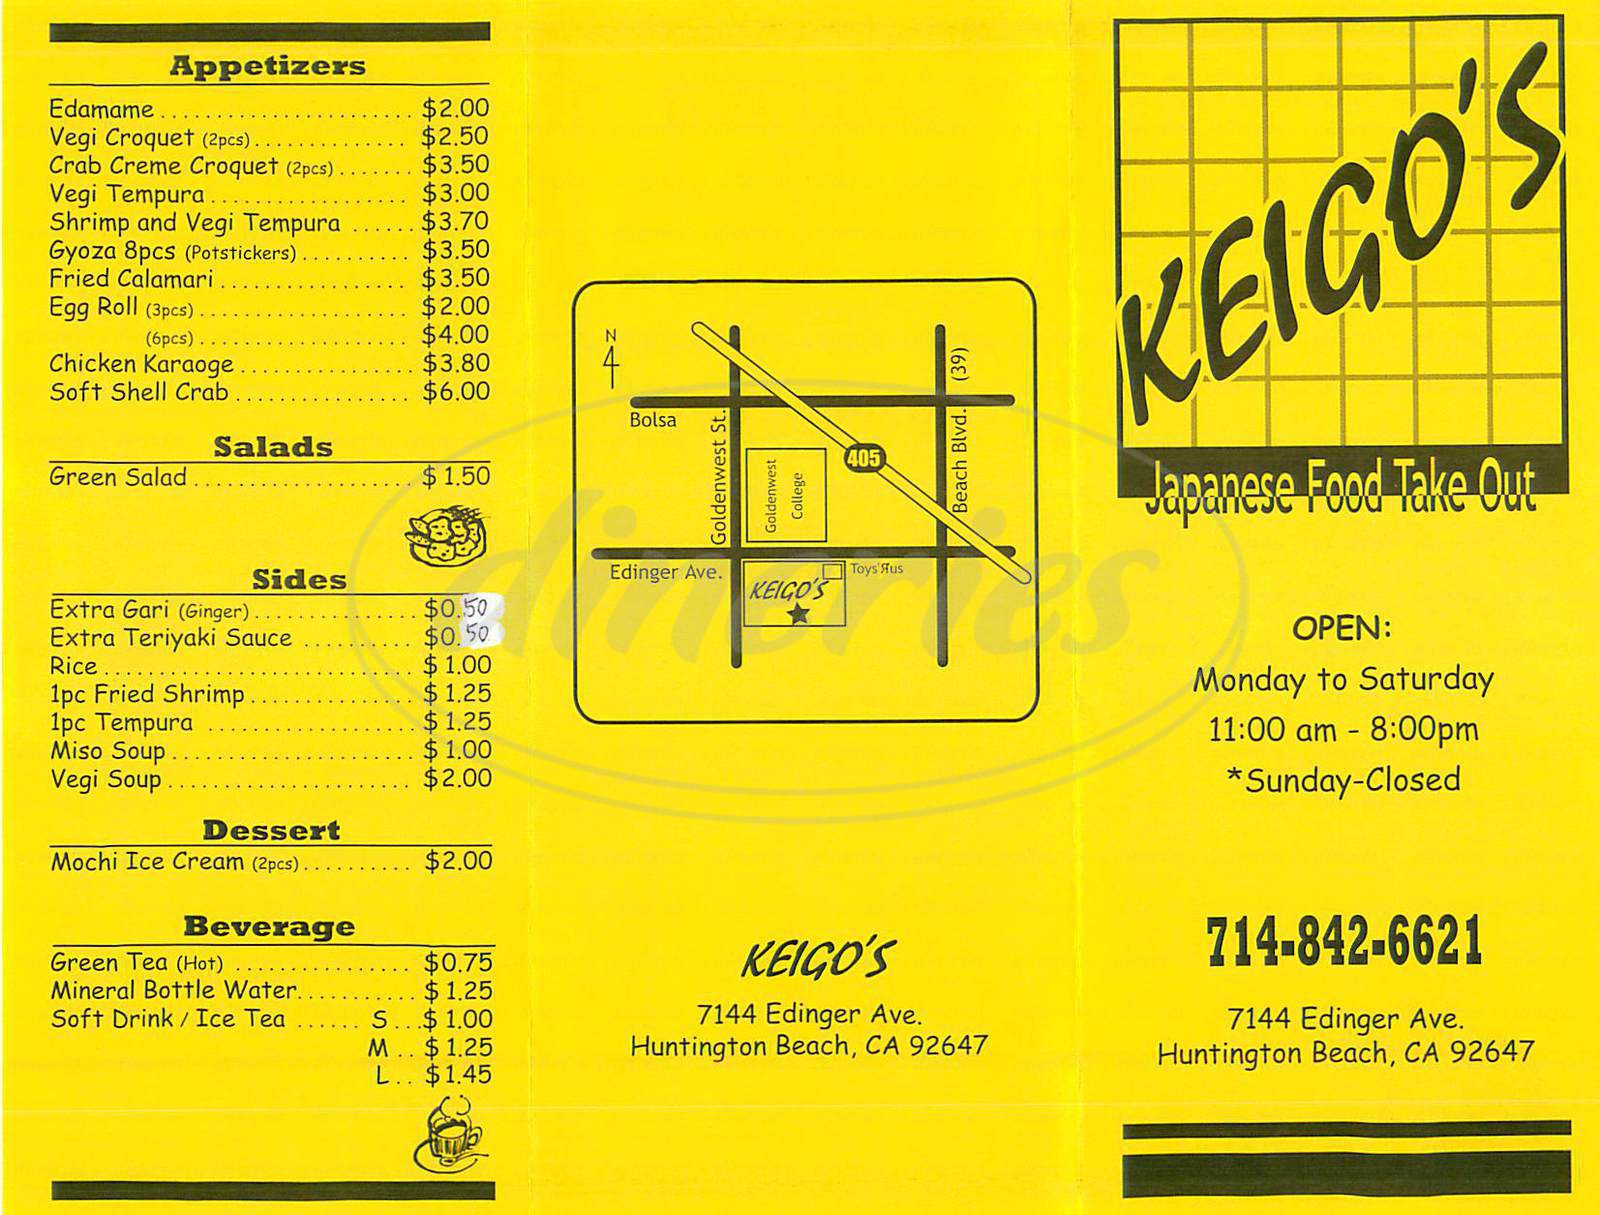 menu for Keigos Japanese Food Take Out